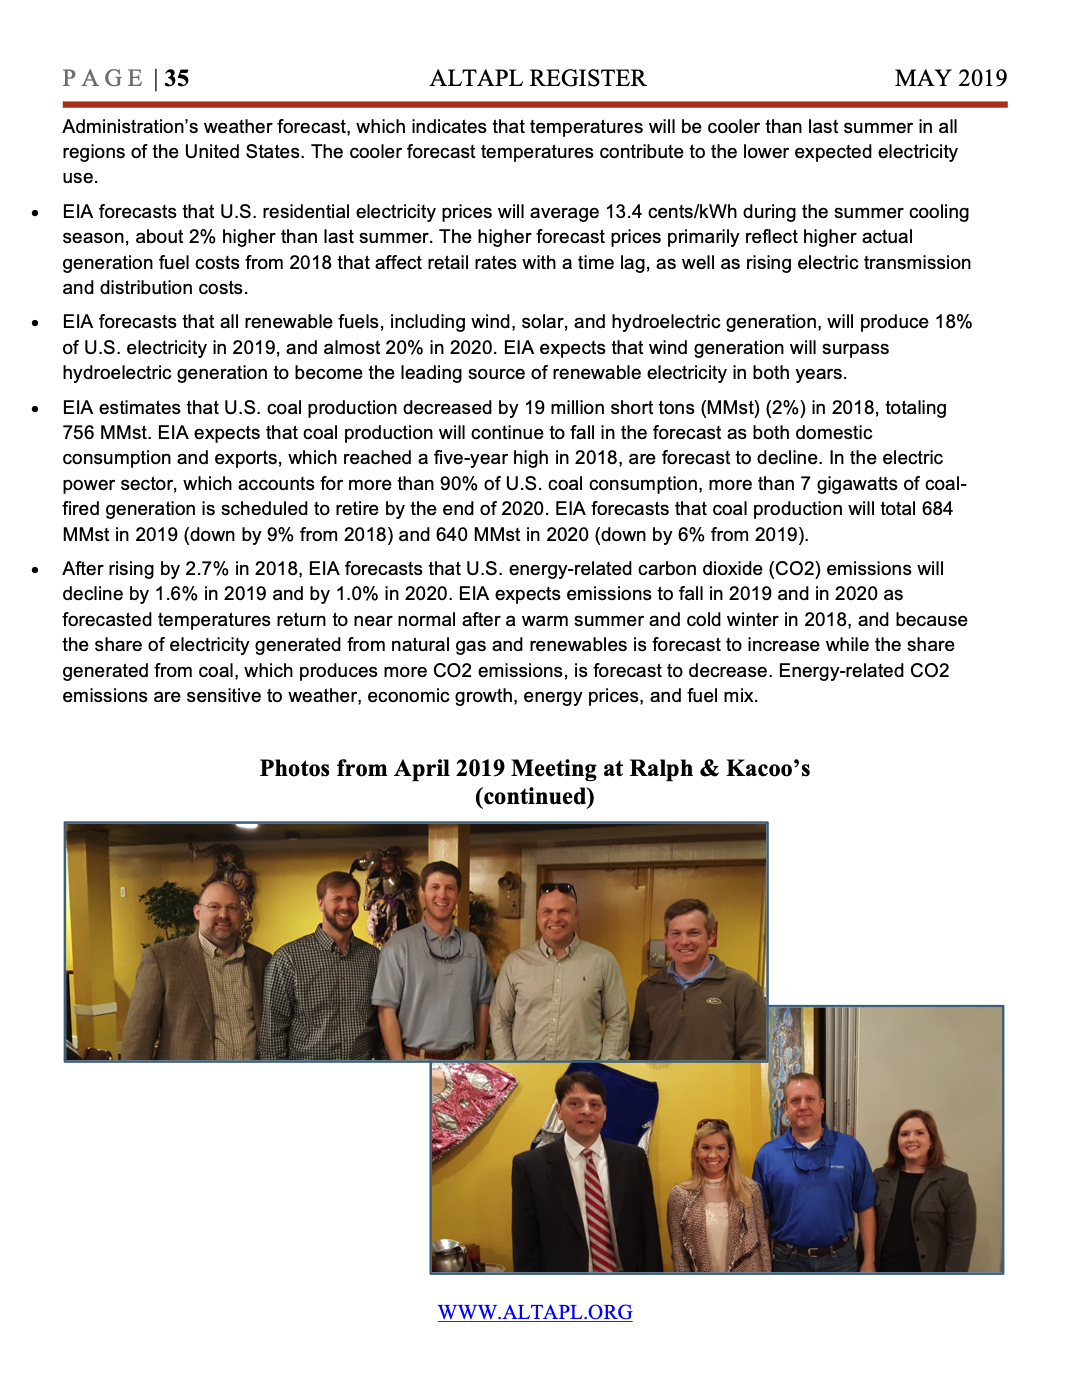 ALTAPL Register May 2019 Page 35.jpg